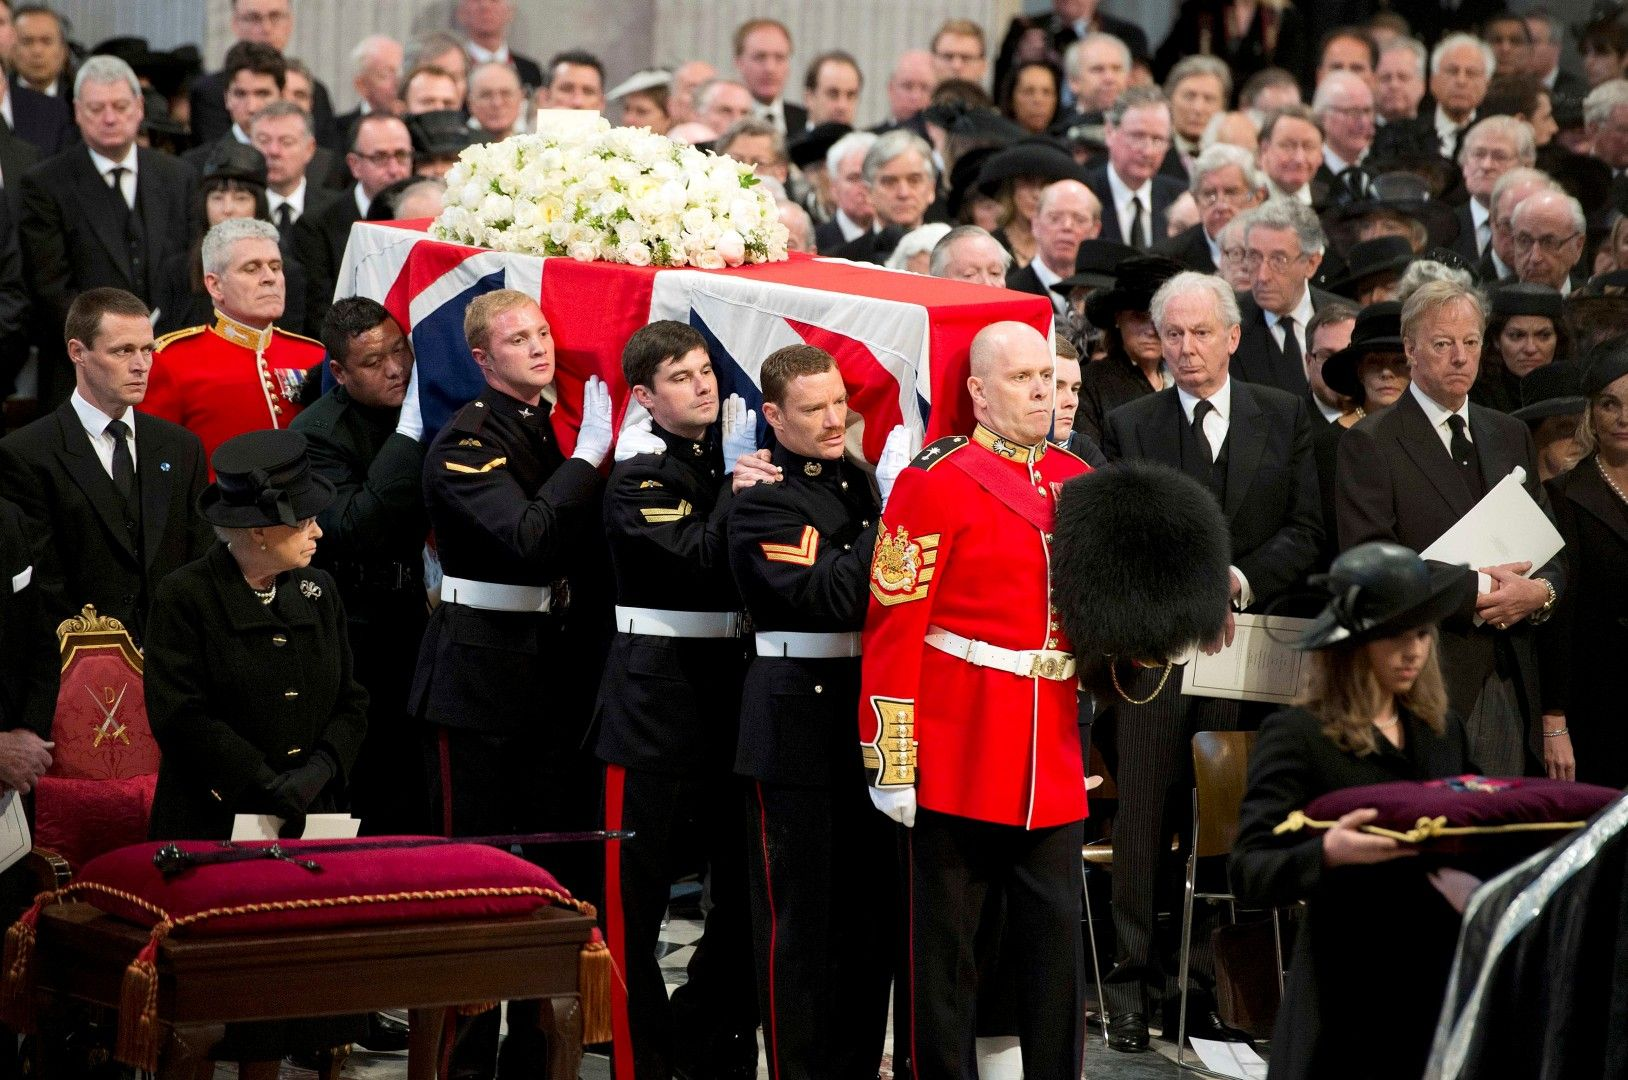 lady diana funeral - Google Search | Lady Diana ...